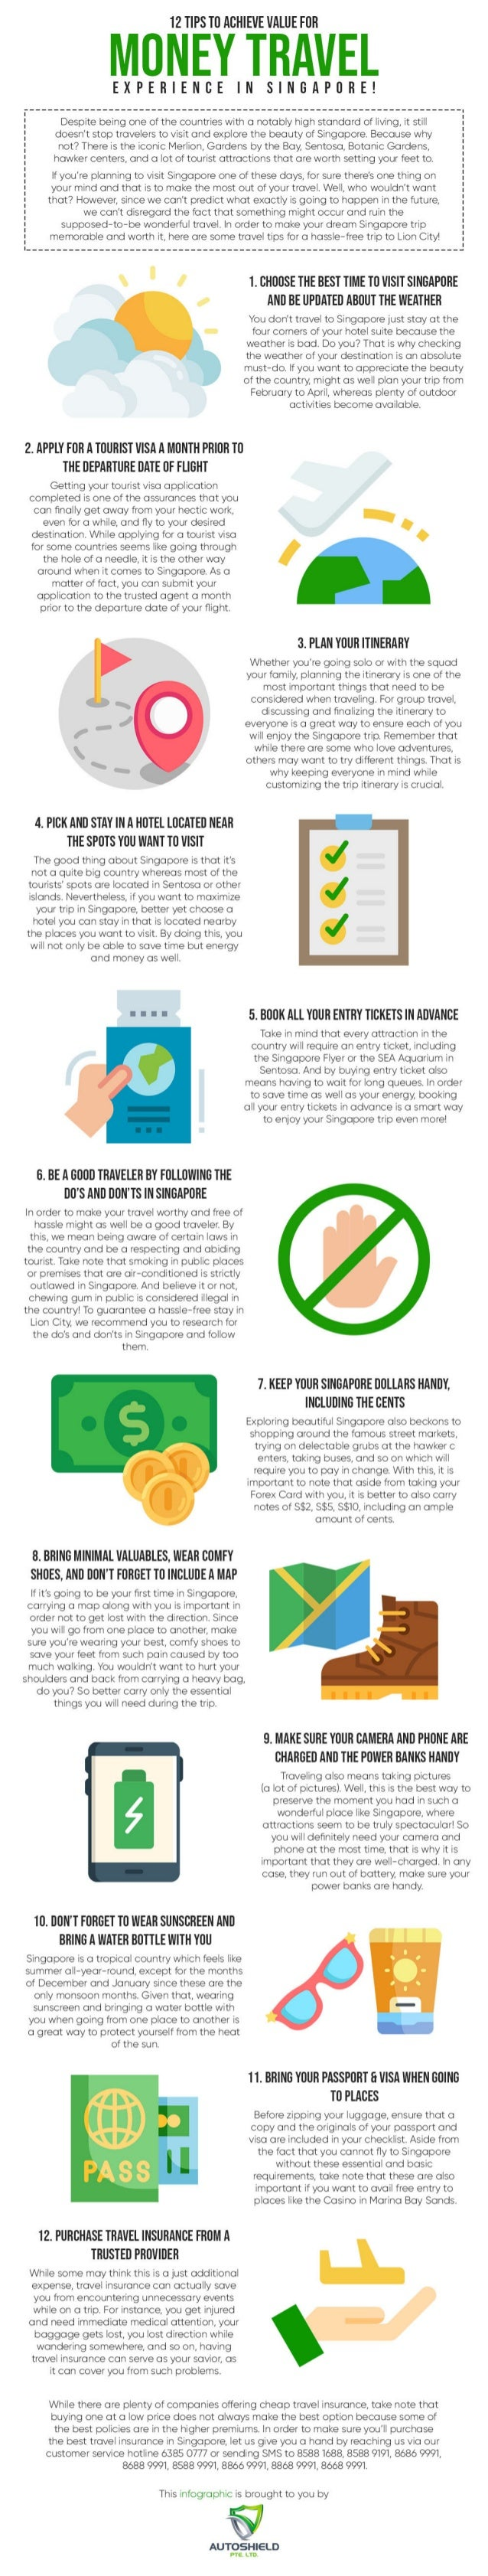 12 tips to achieve value for money travel experience in singapore!